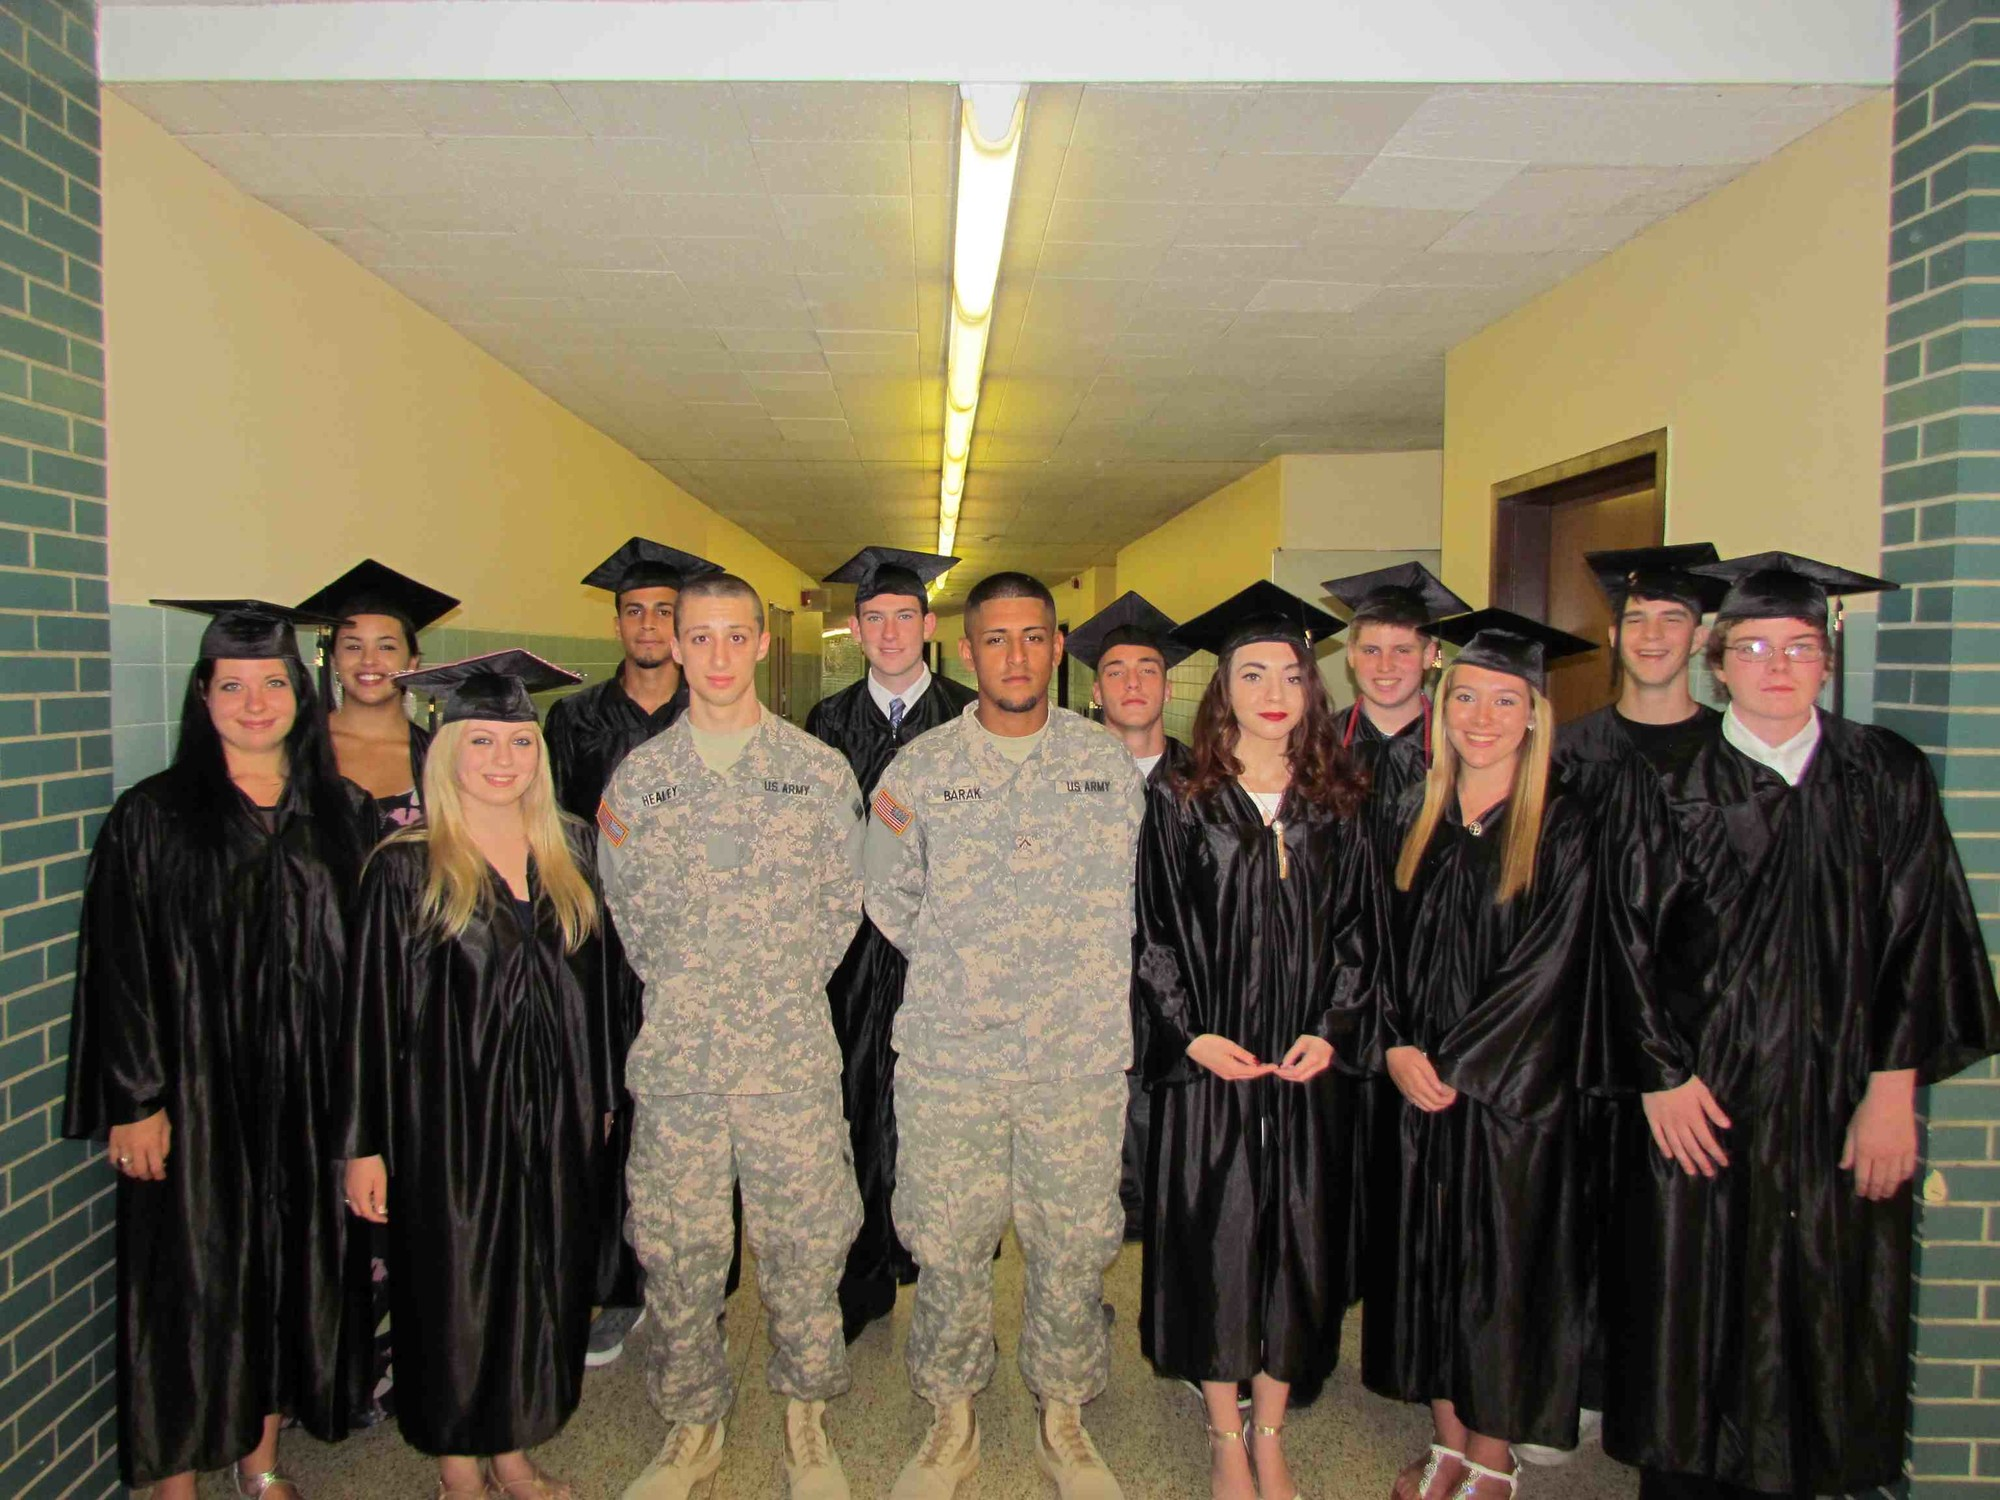 Students at the Meadowbrook Alternative Program in the Bellmore-Merrick Central High School District graduated from the program on June 23.